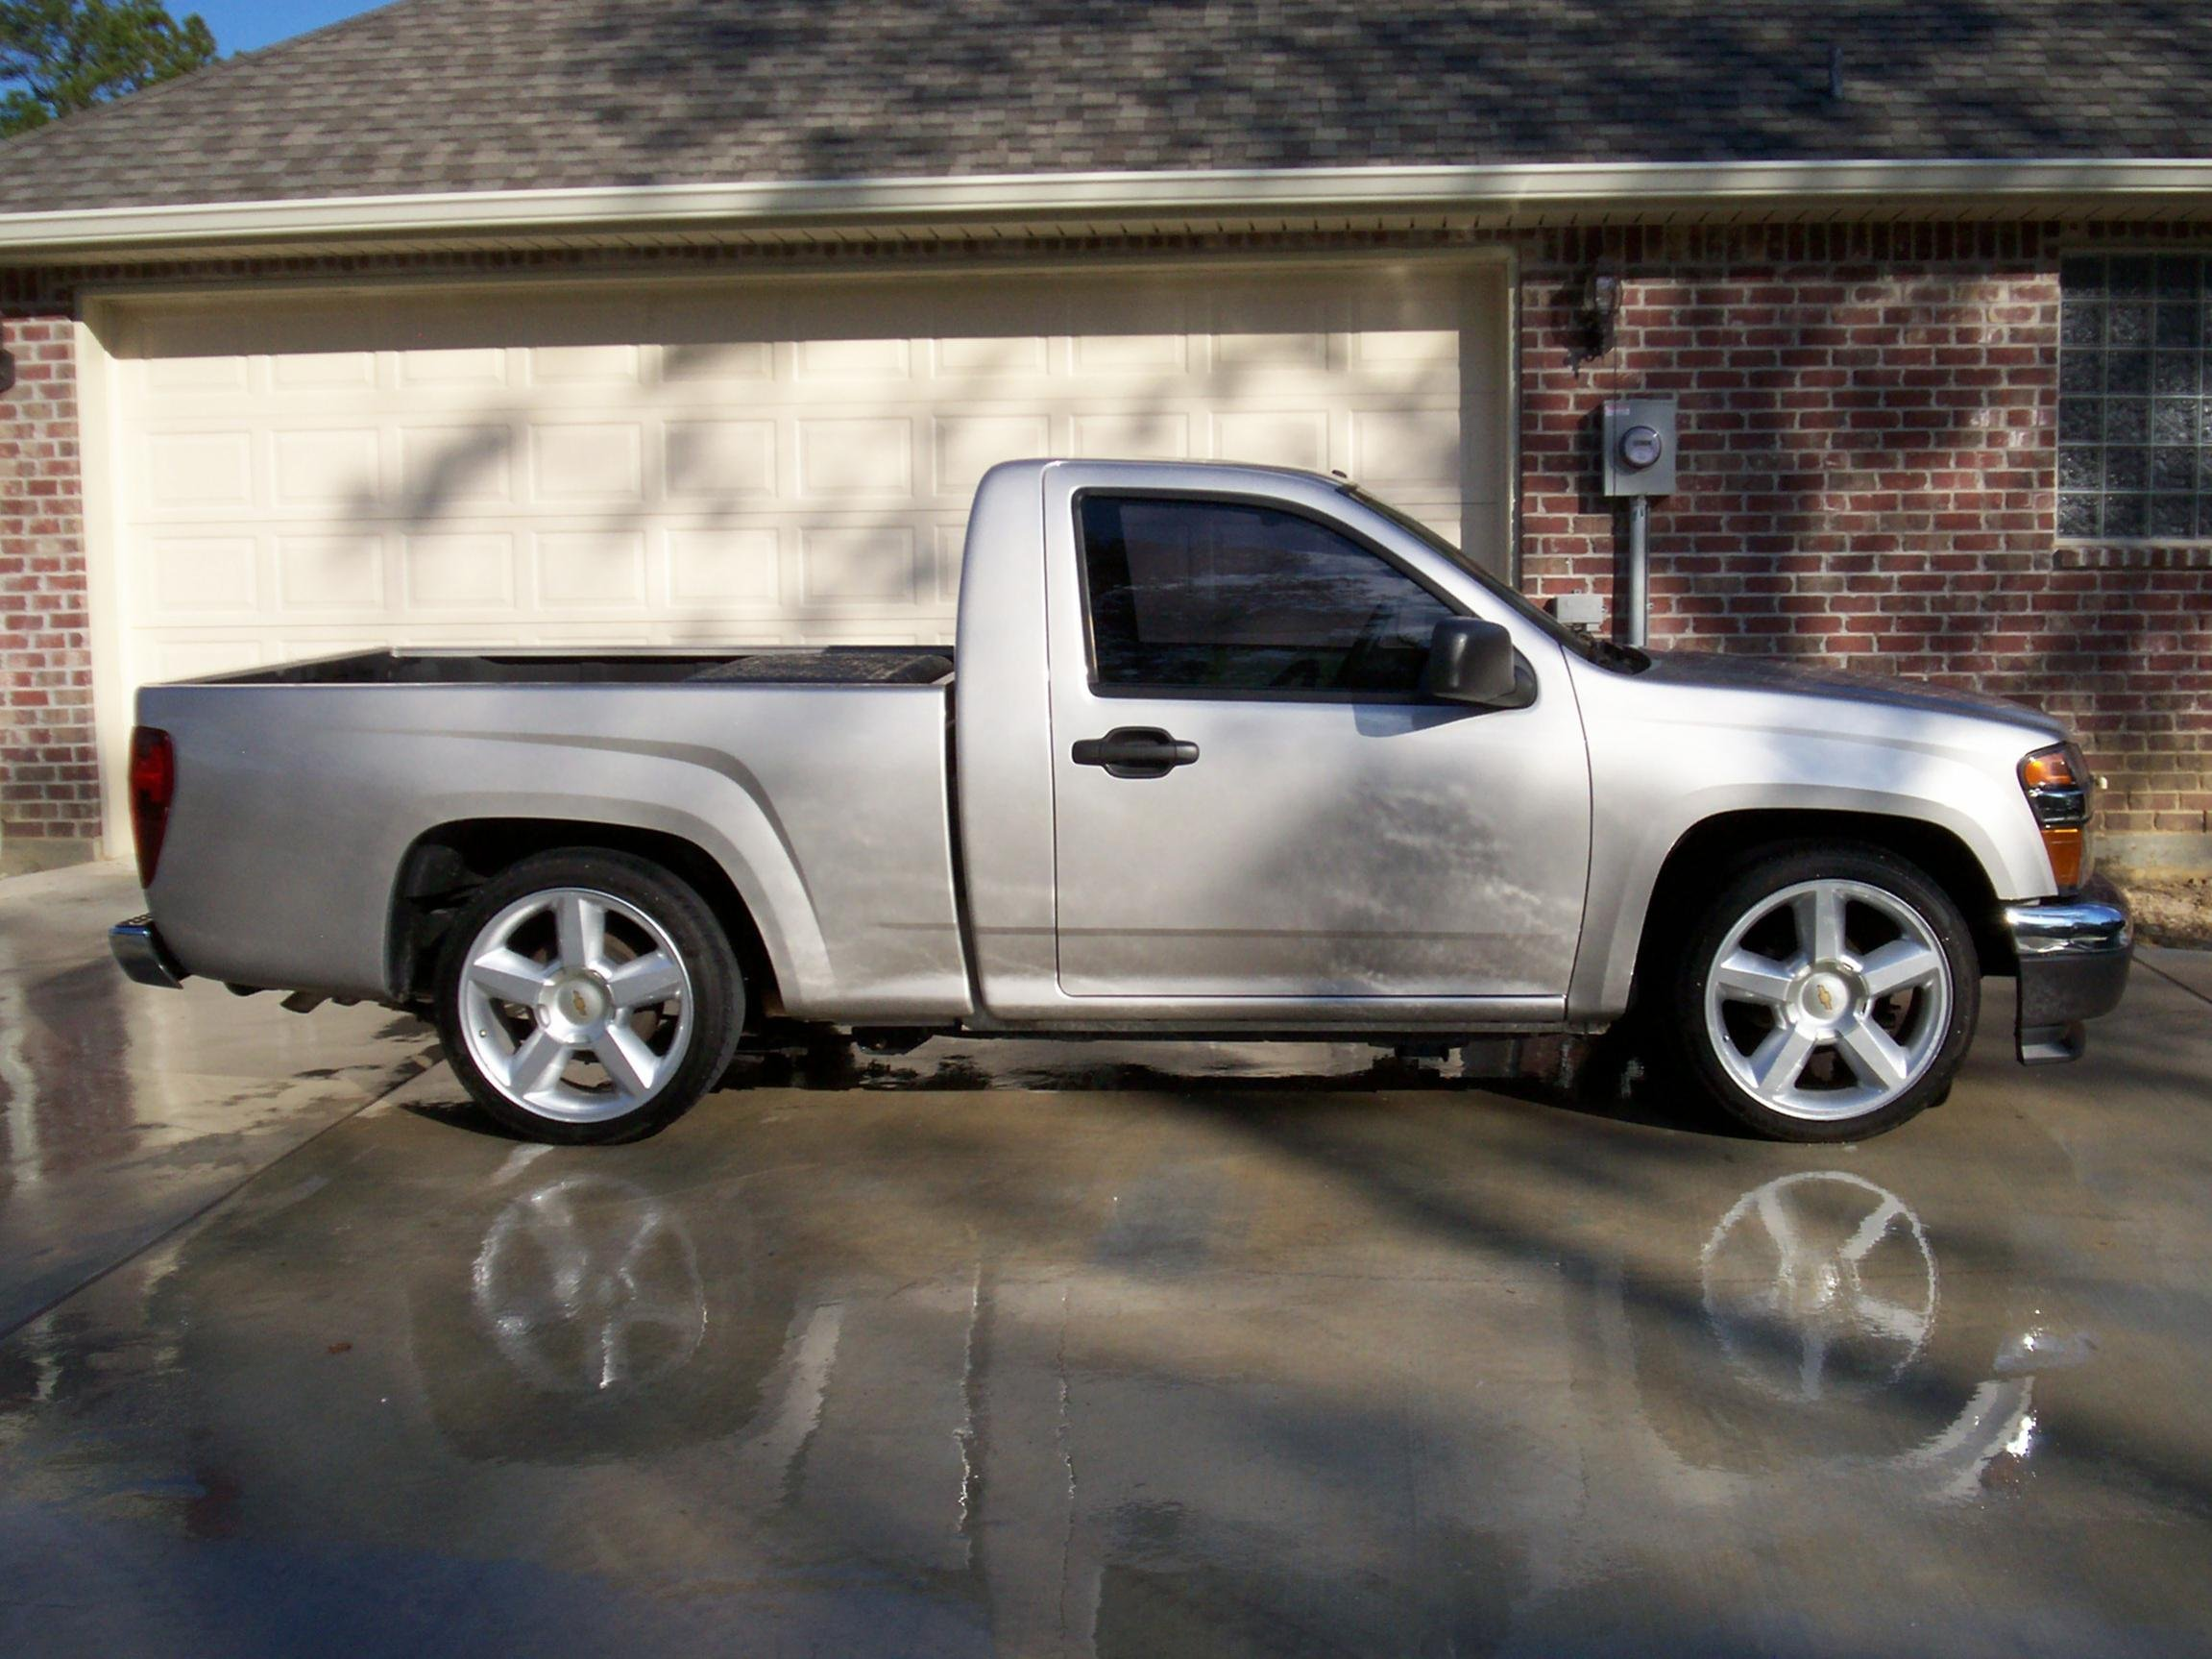 Chevy Colorado Forum >> Anyone put on Tahoe rims? - Page 2 - Chevrolet Colorado & GMC Canyon Forum